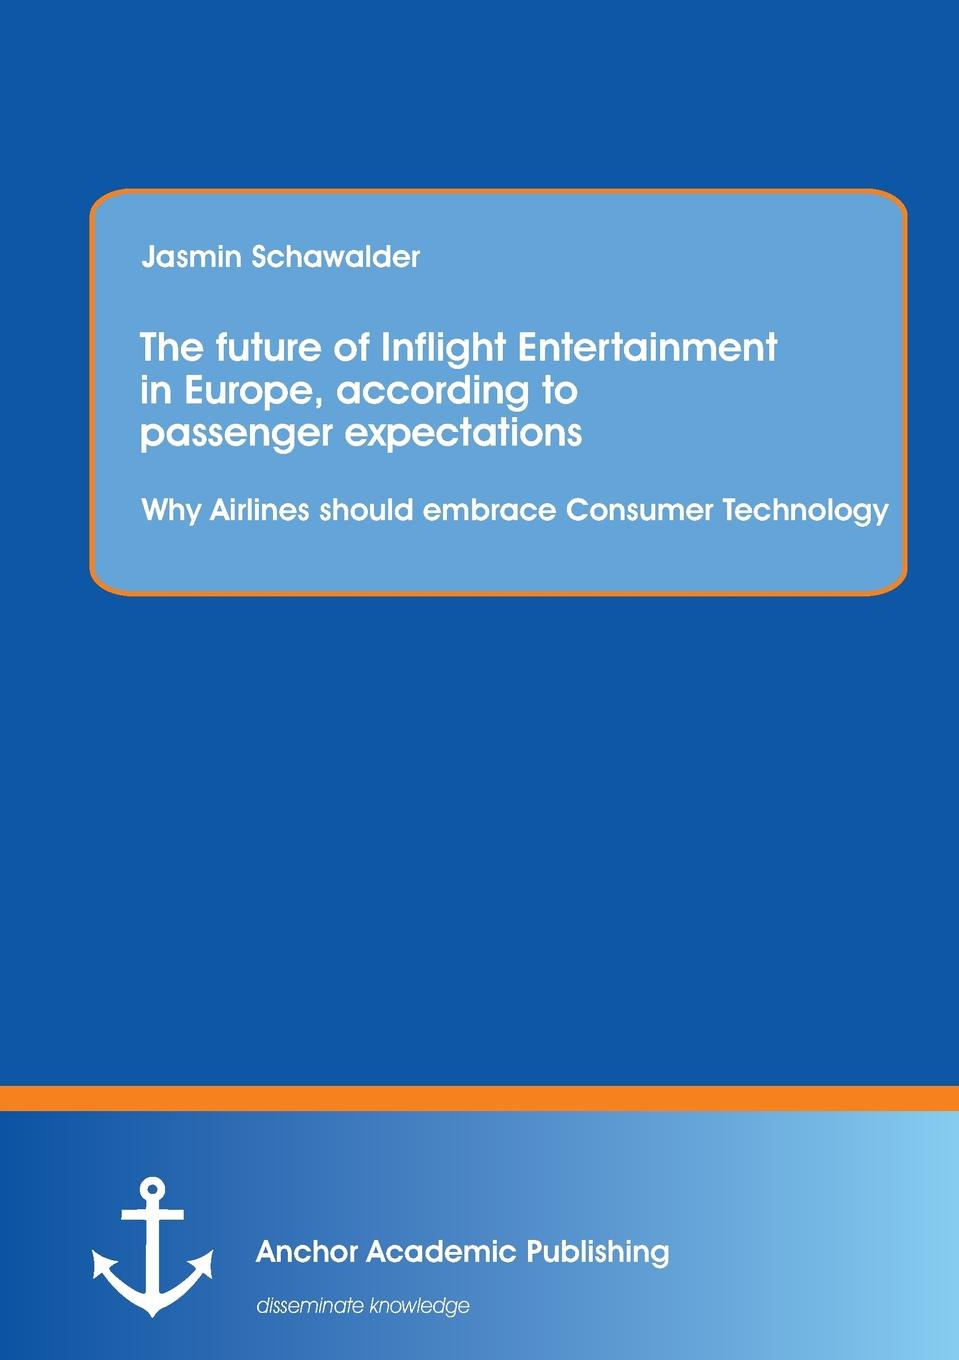 The future of Inflight Entertainment in Europe, according to passenger expectations. Why Airlines should embrace Consumer Technology Consumerization - passengers toting their tablets, laptops...